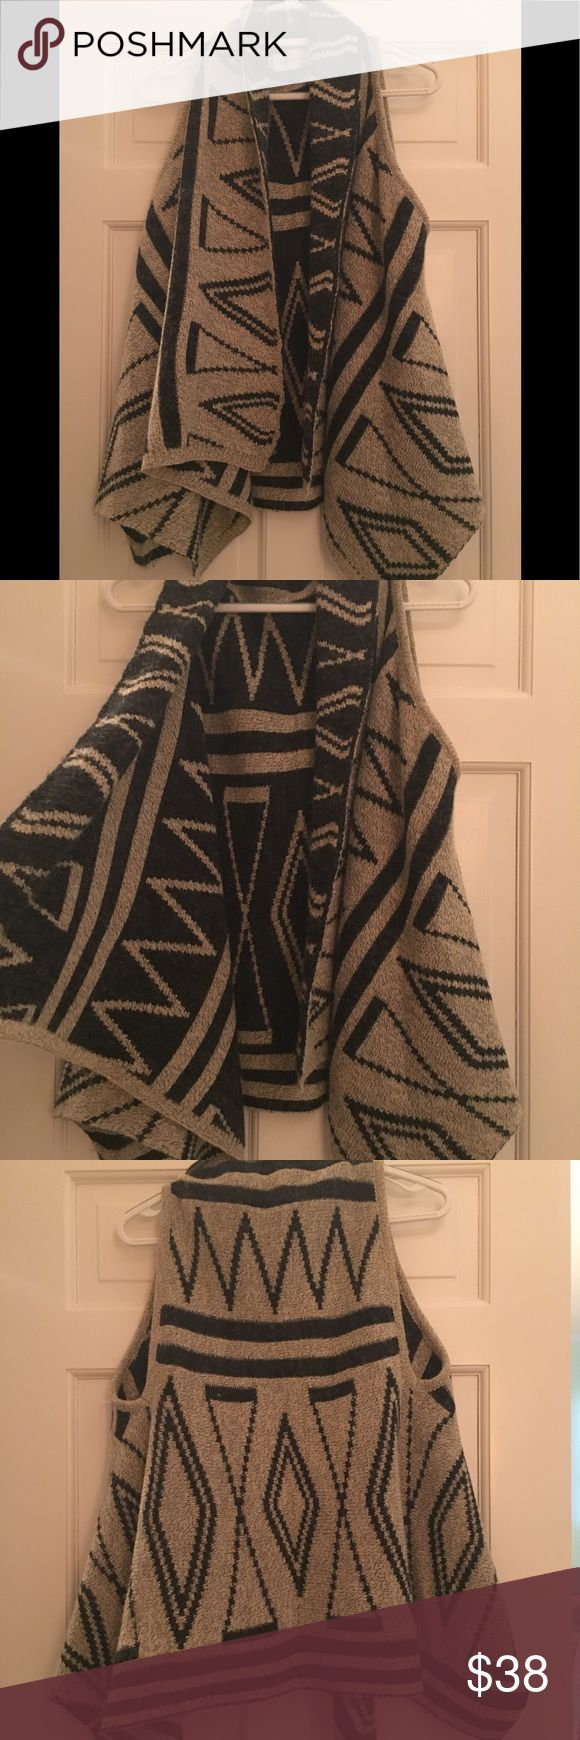 Dreamers knit Aztec vest WORN ONCE High low vest with inverse colors on inside Dreamers Jackets & Coats Vests